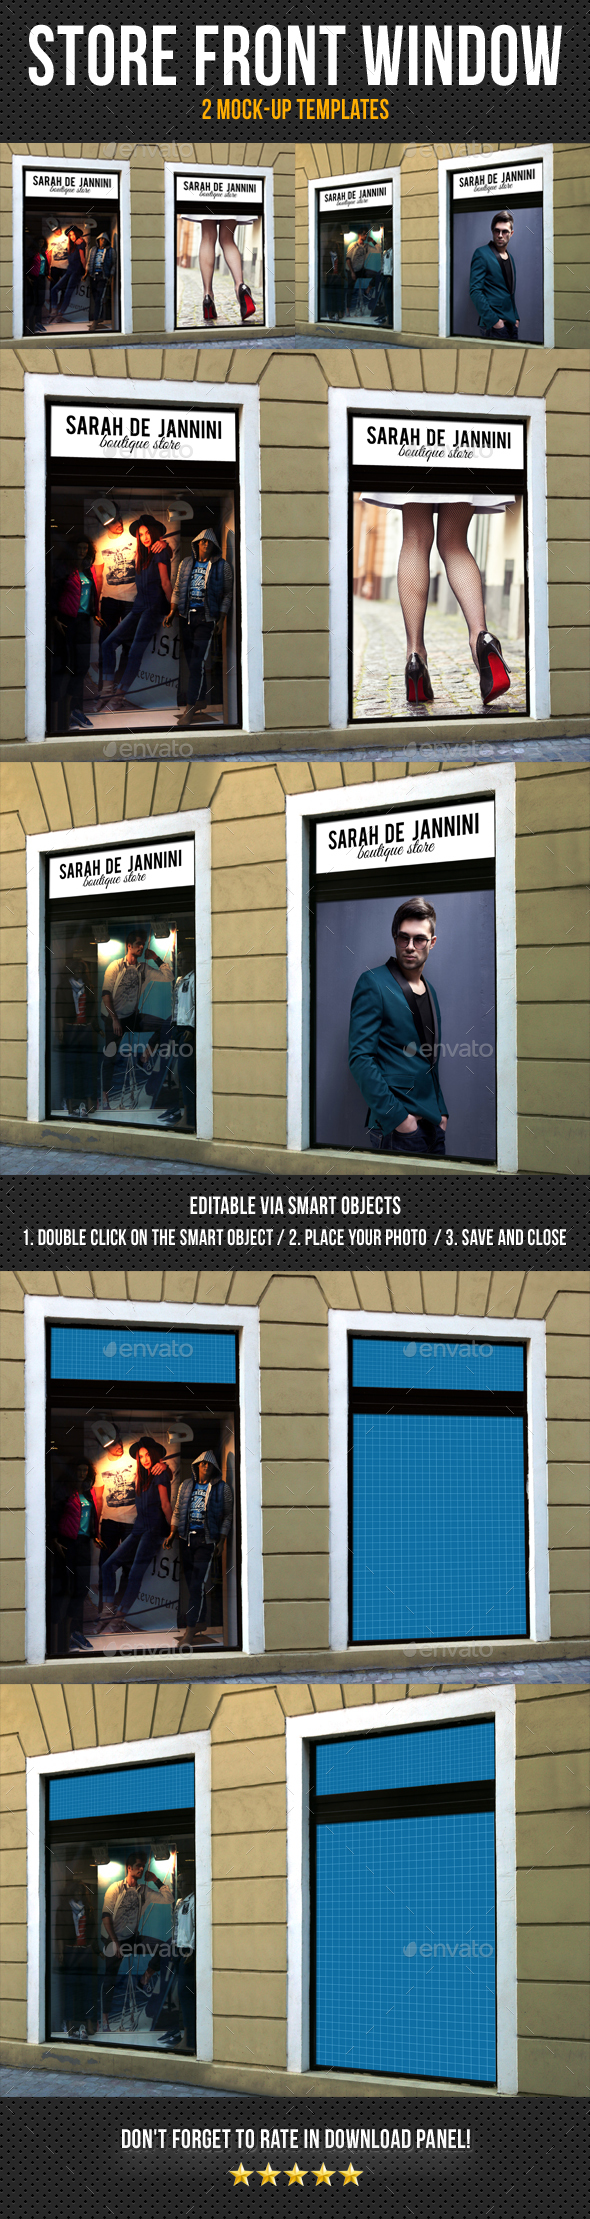 Store Front Window Mock-Up Pack 05 - Posters Print